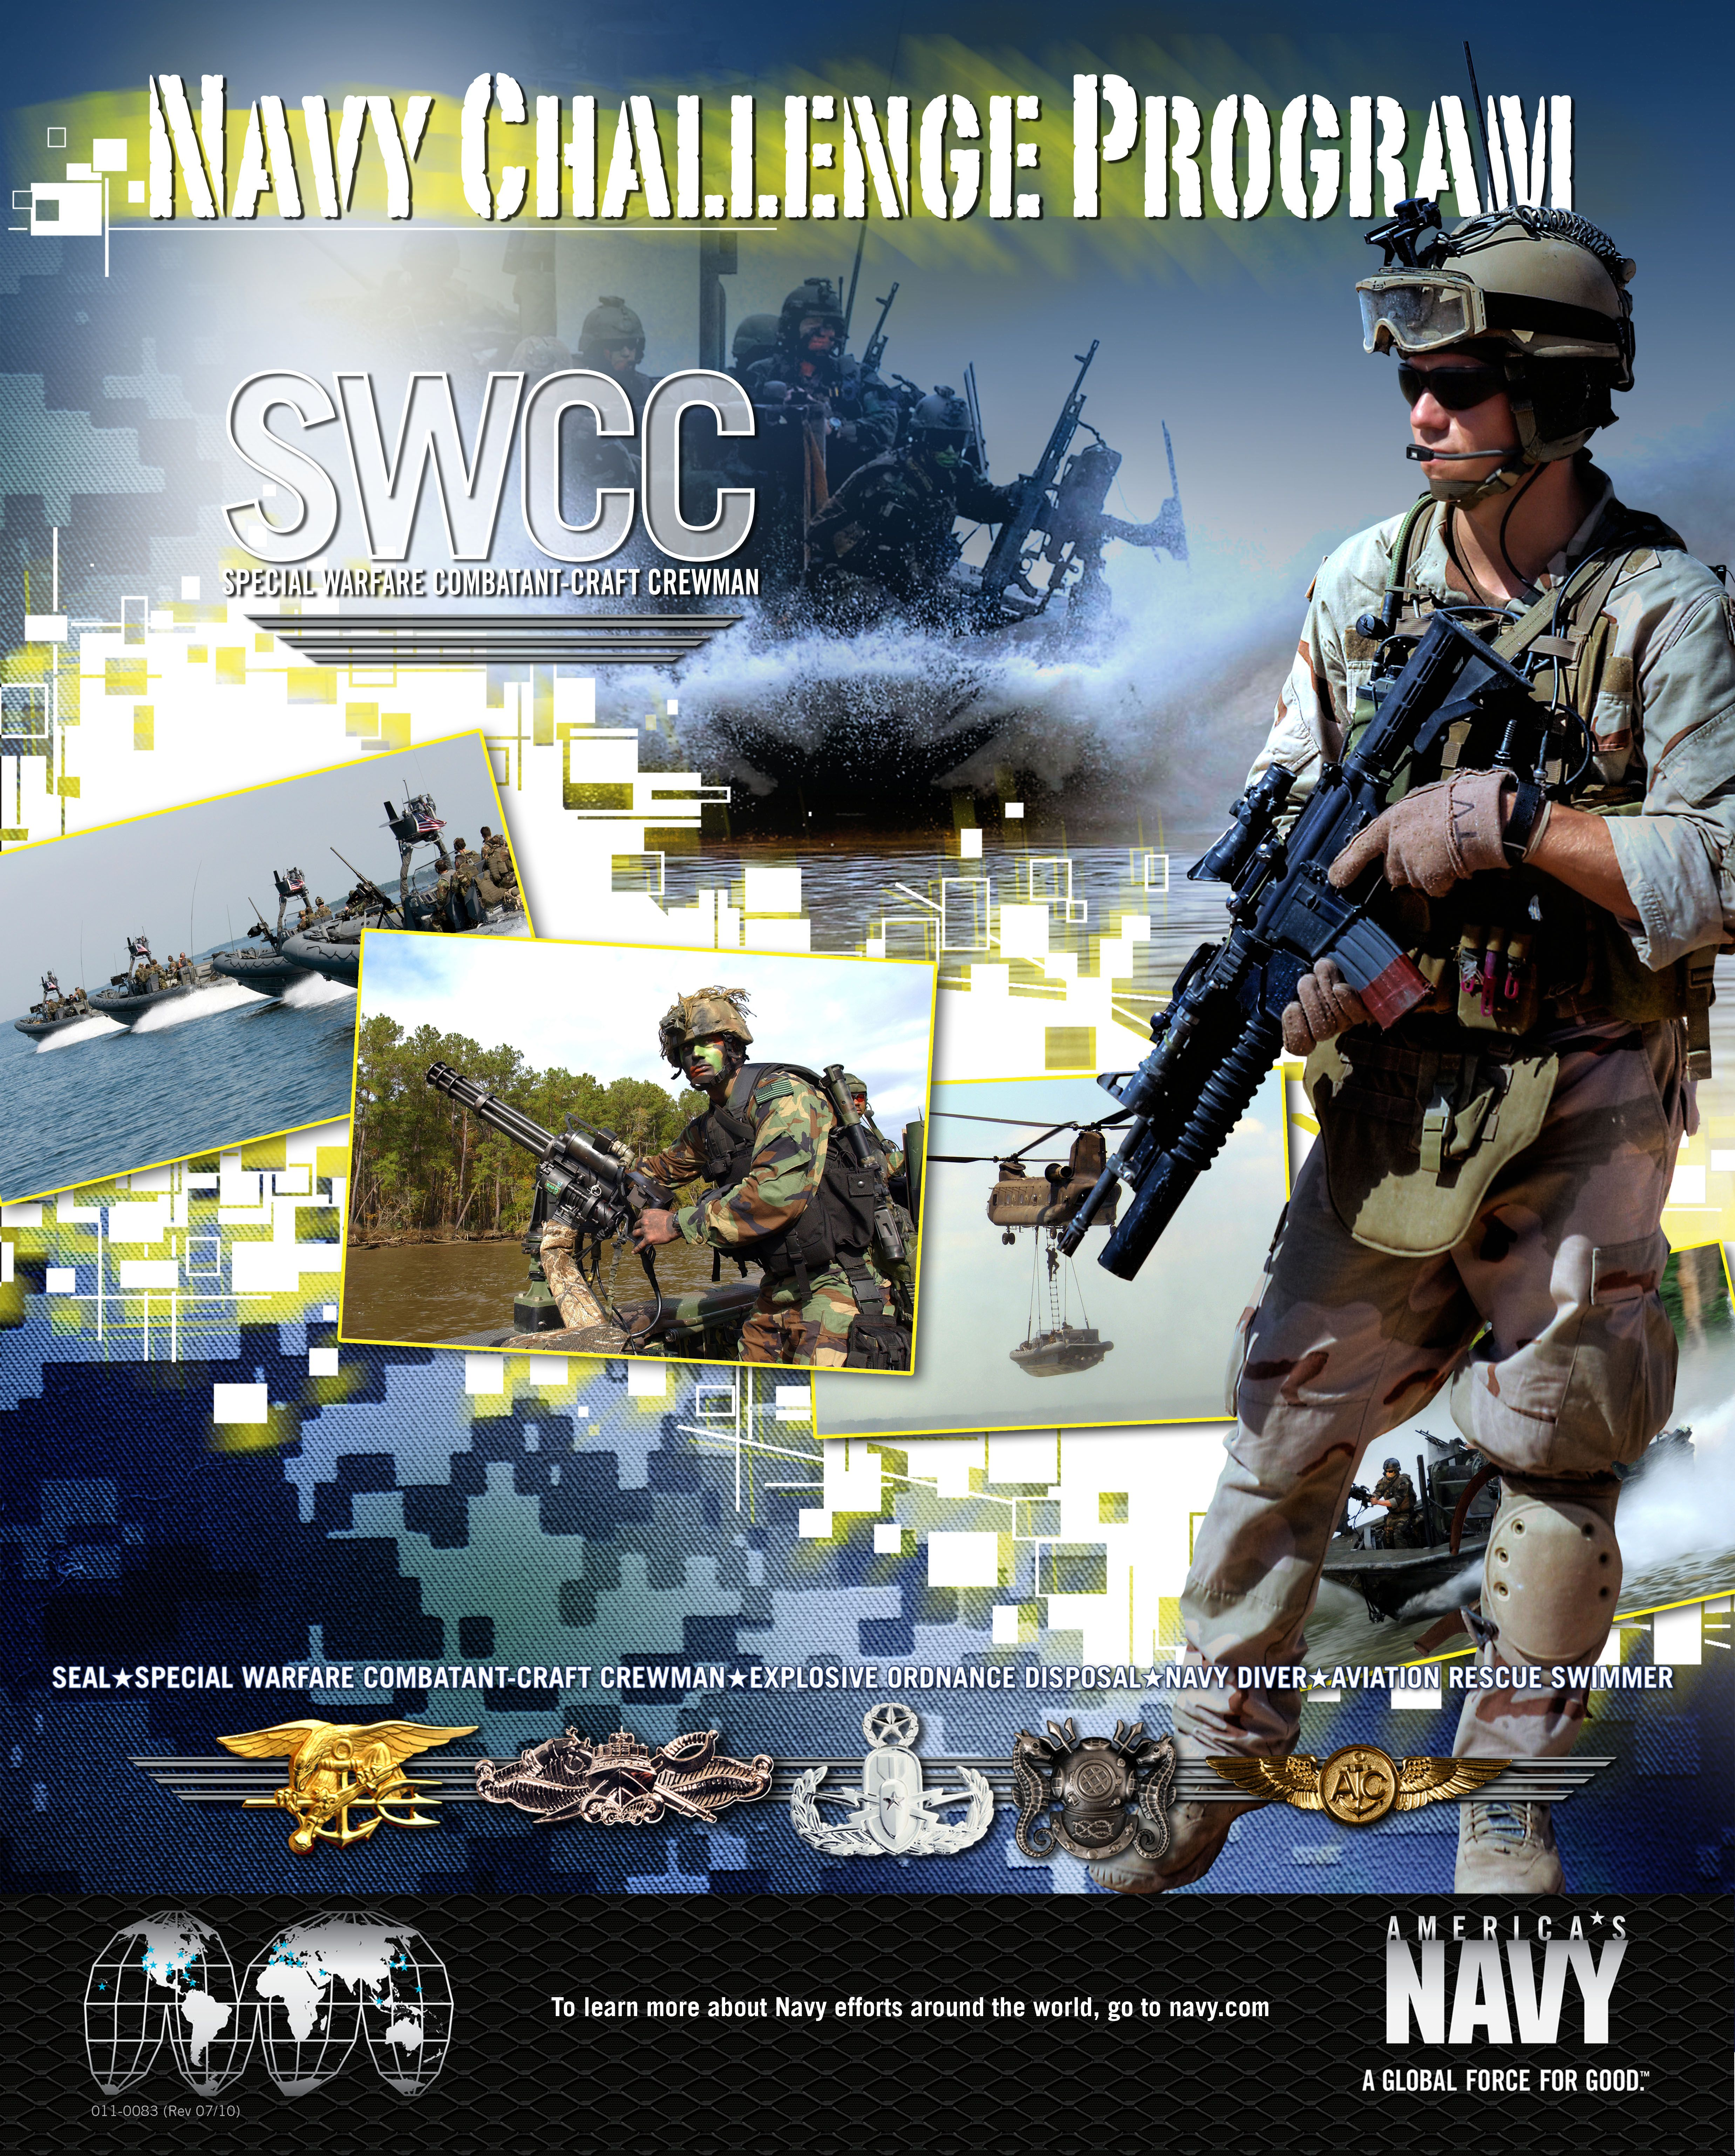 Navy Challenge Program Swcc Navy Pinterest Navy